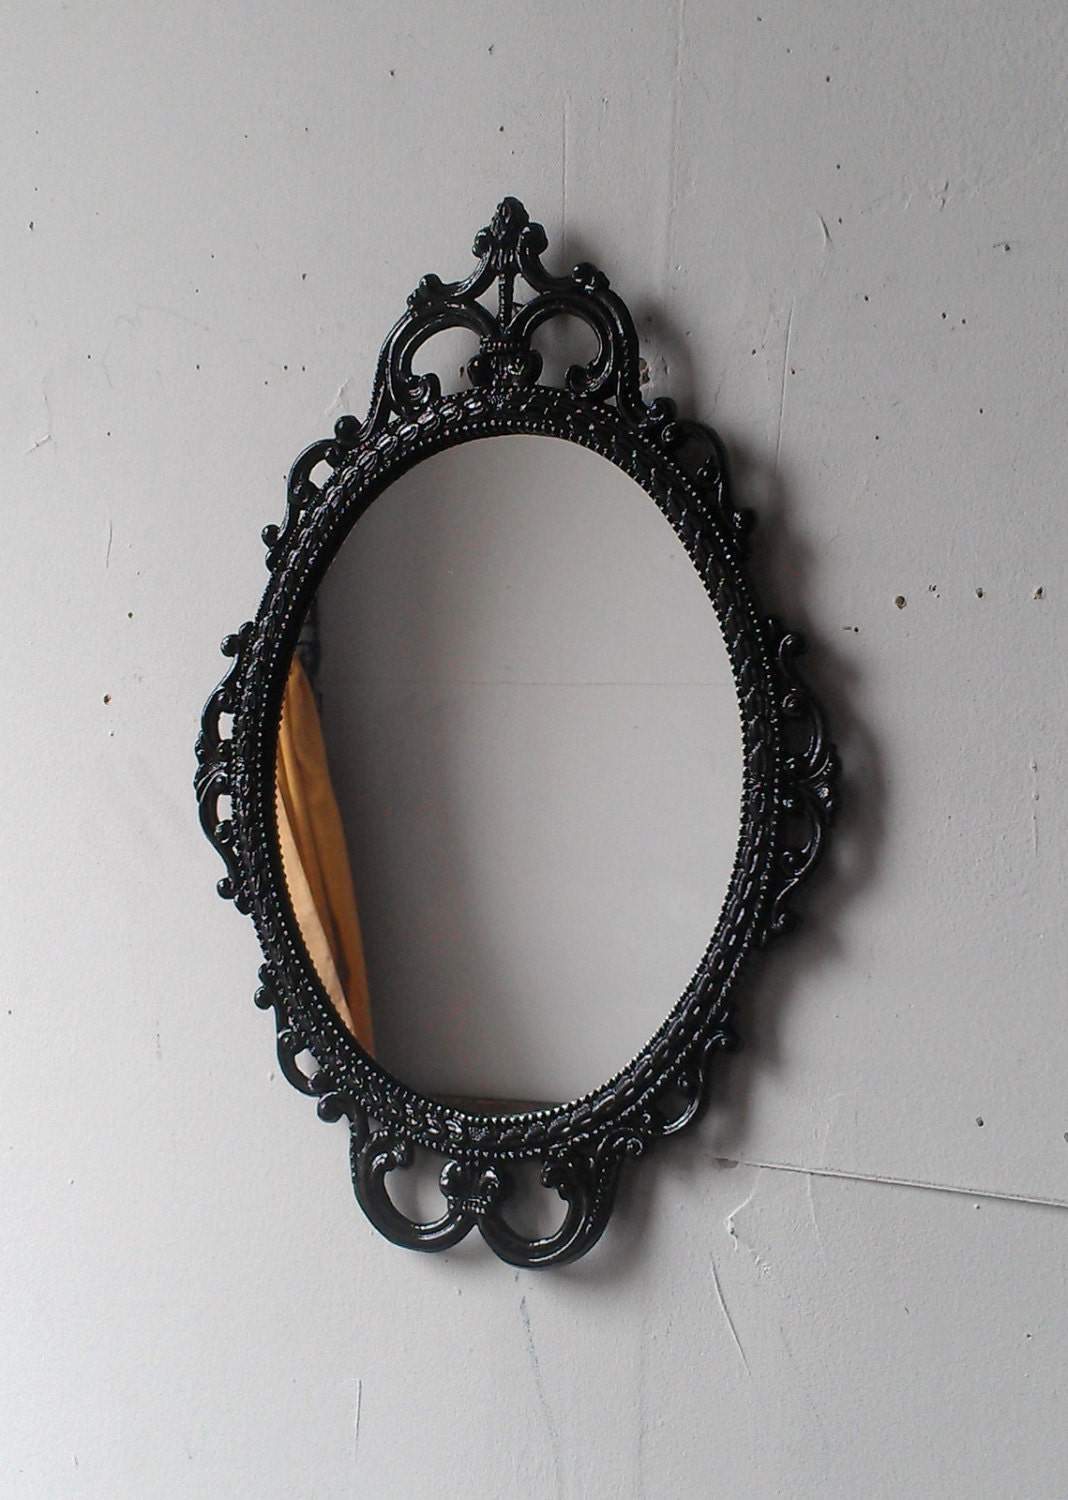 Ornate oval mirror in vintage metal frame 17 x 12 inch for Metal frame mirror